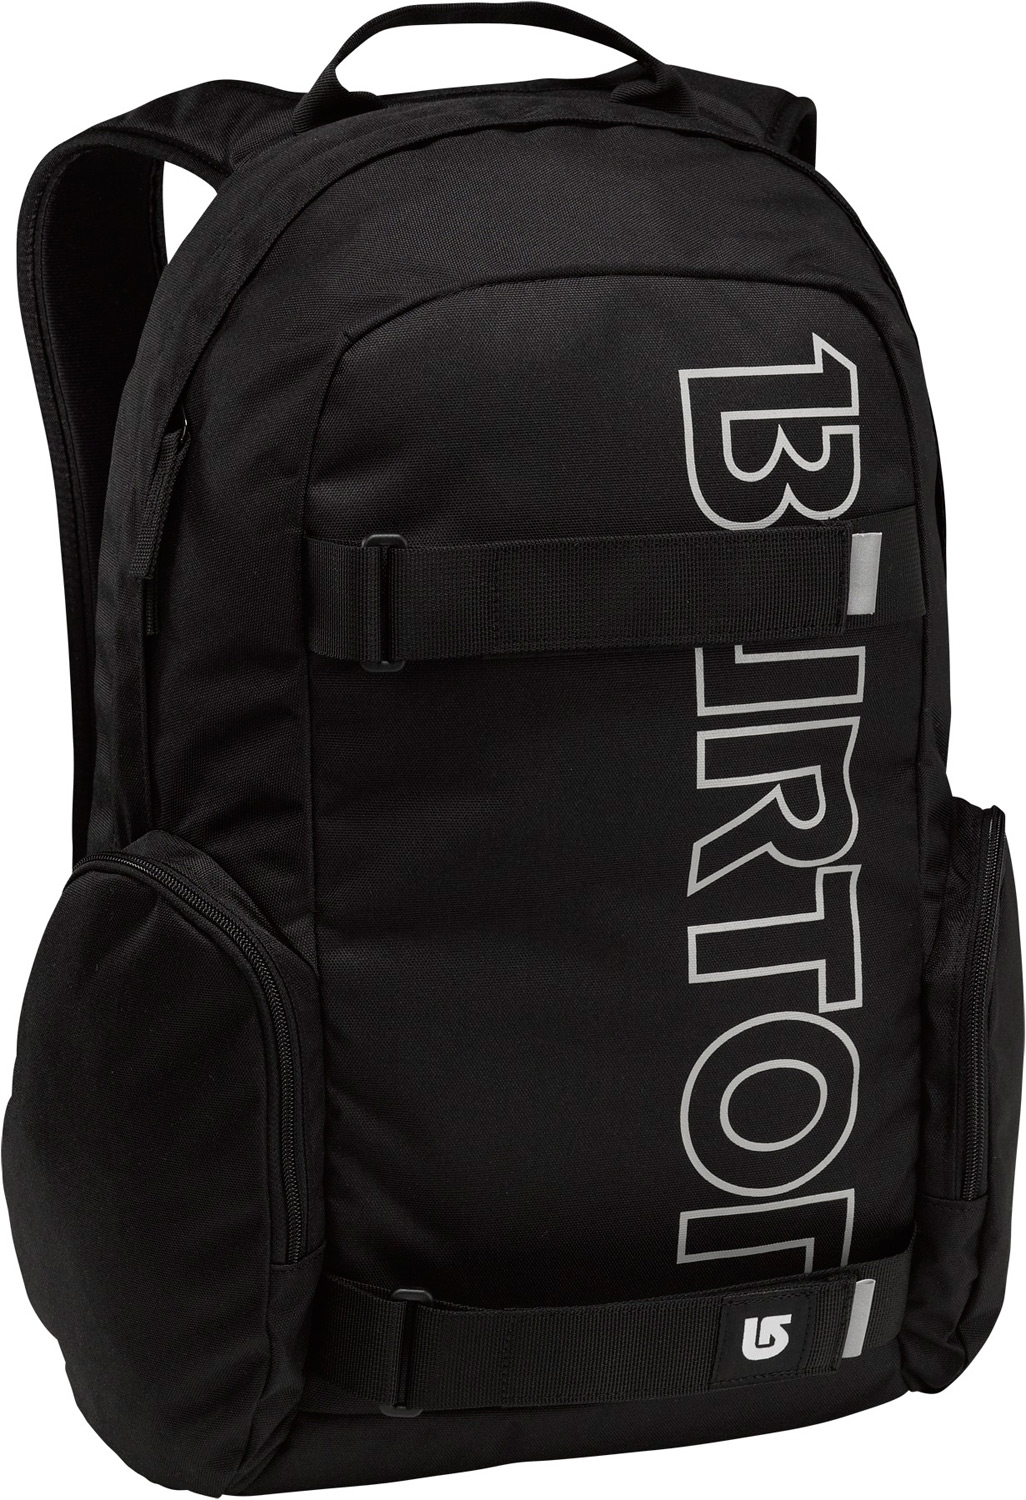 Snowboard Full featured skate pack with big time branding.Key Features of the Burton Emphasis Backpack: Volume: 26L Weight: 1.6 lbs./0.7kg Dimensions: 18.5x12x7.5 in/47x31x19 cm Fabrication: 300DPolyester Dobby/600D Polyester Cush Ergonomic Shoulder Harness and Adjustable Sternum Strap Vertical Skate Carry Padded Laptop Compartment Fleece-Lined Internal Pocket - $27.95